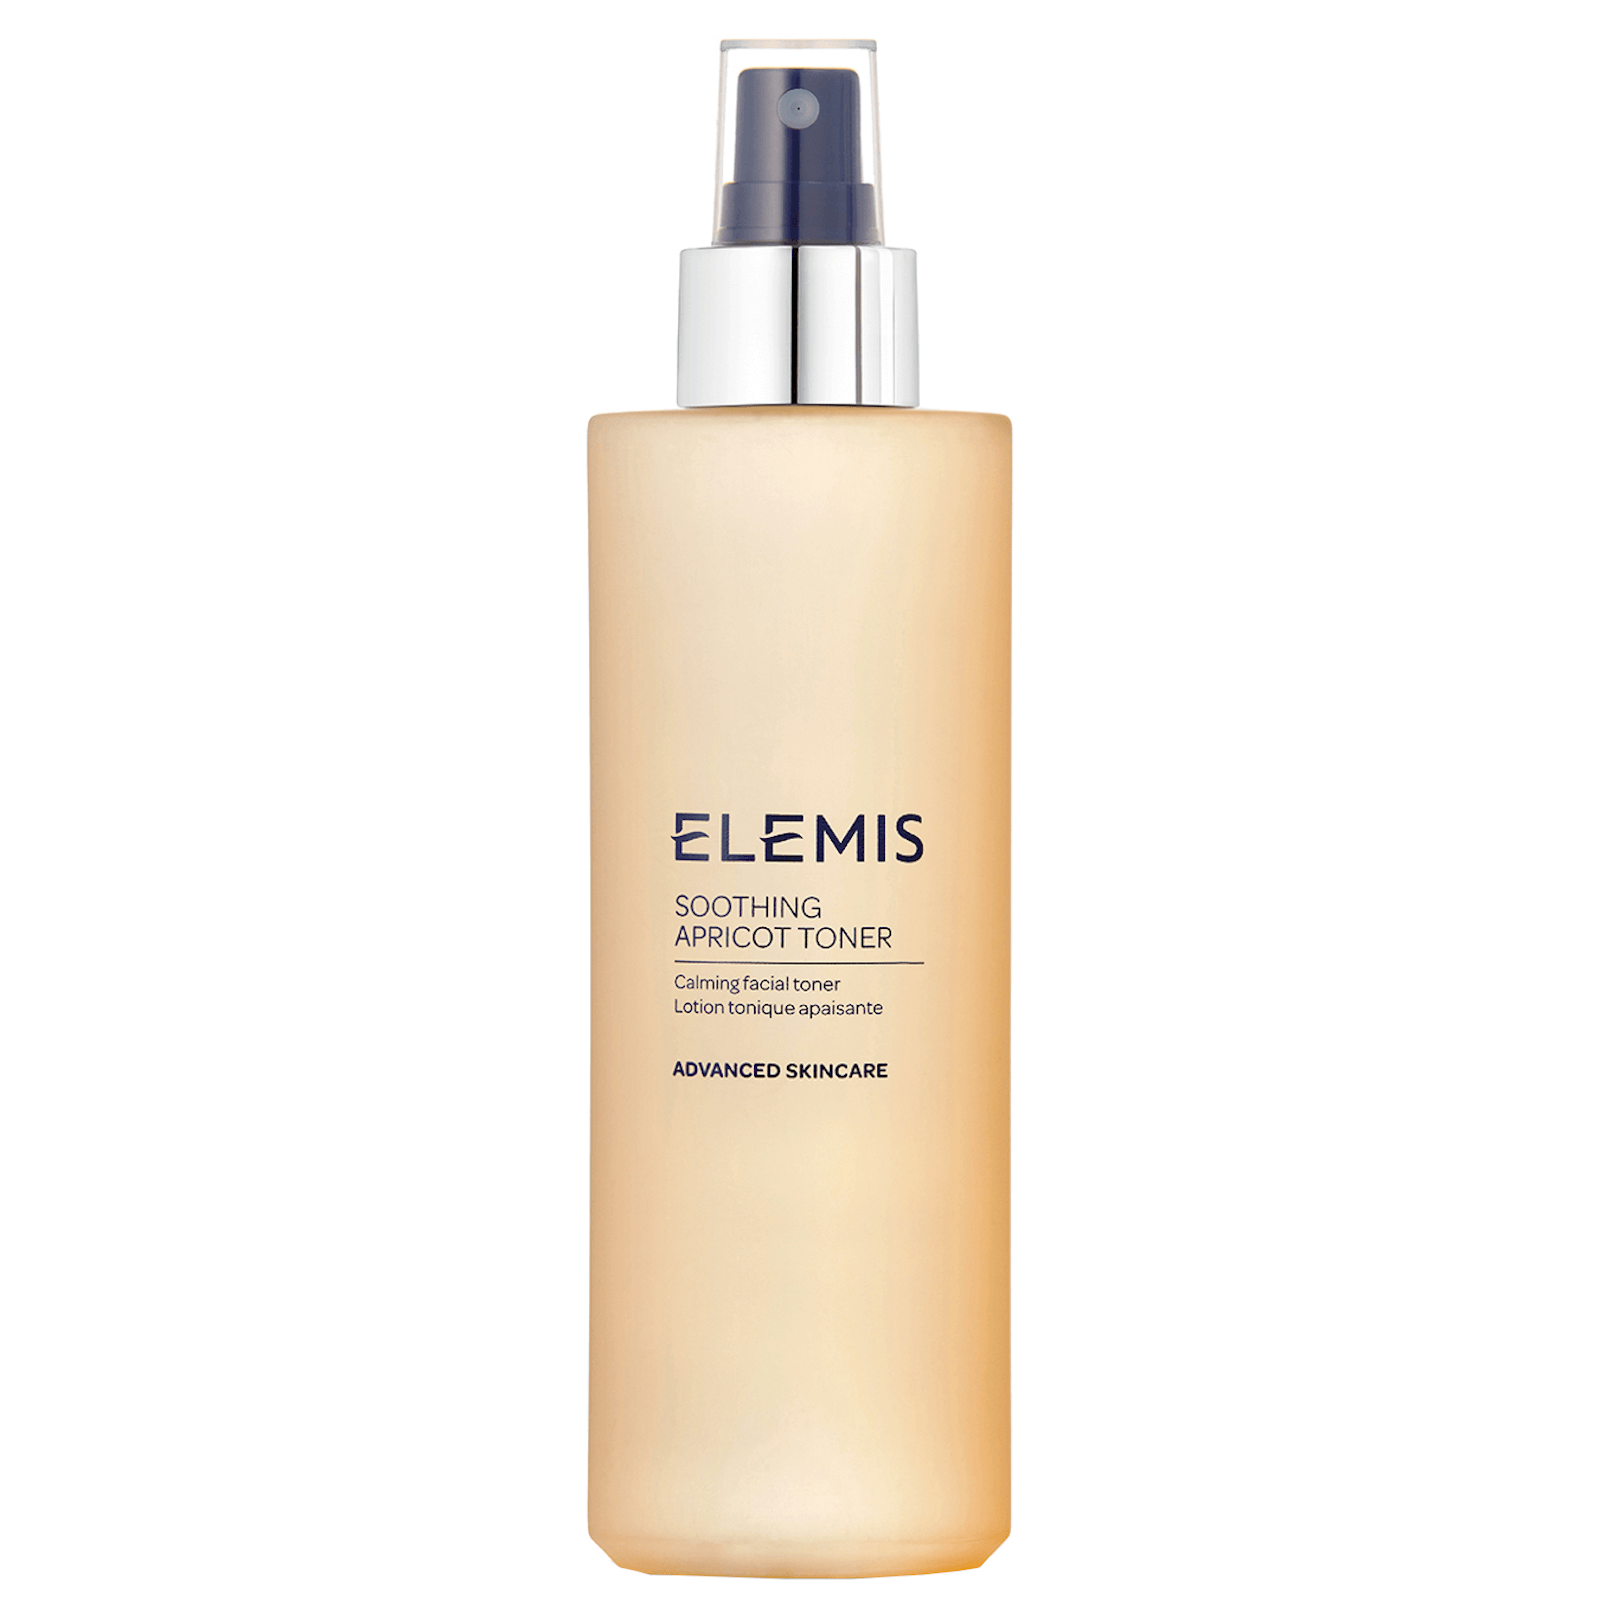 Elemis Soothing Apricot Toner, 200ml, face toner, London Loves Beauty